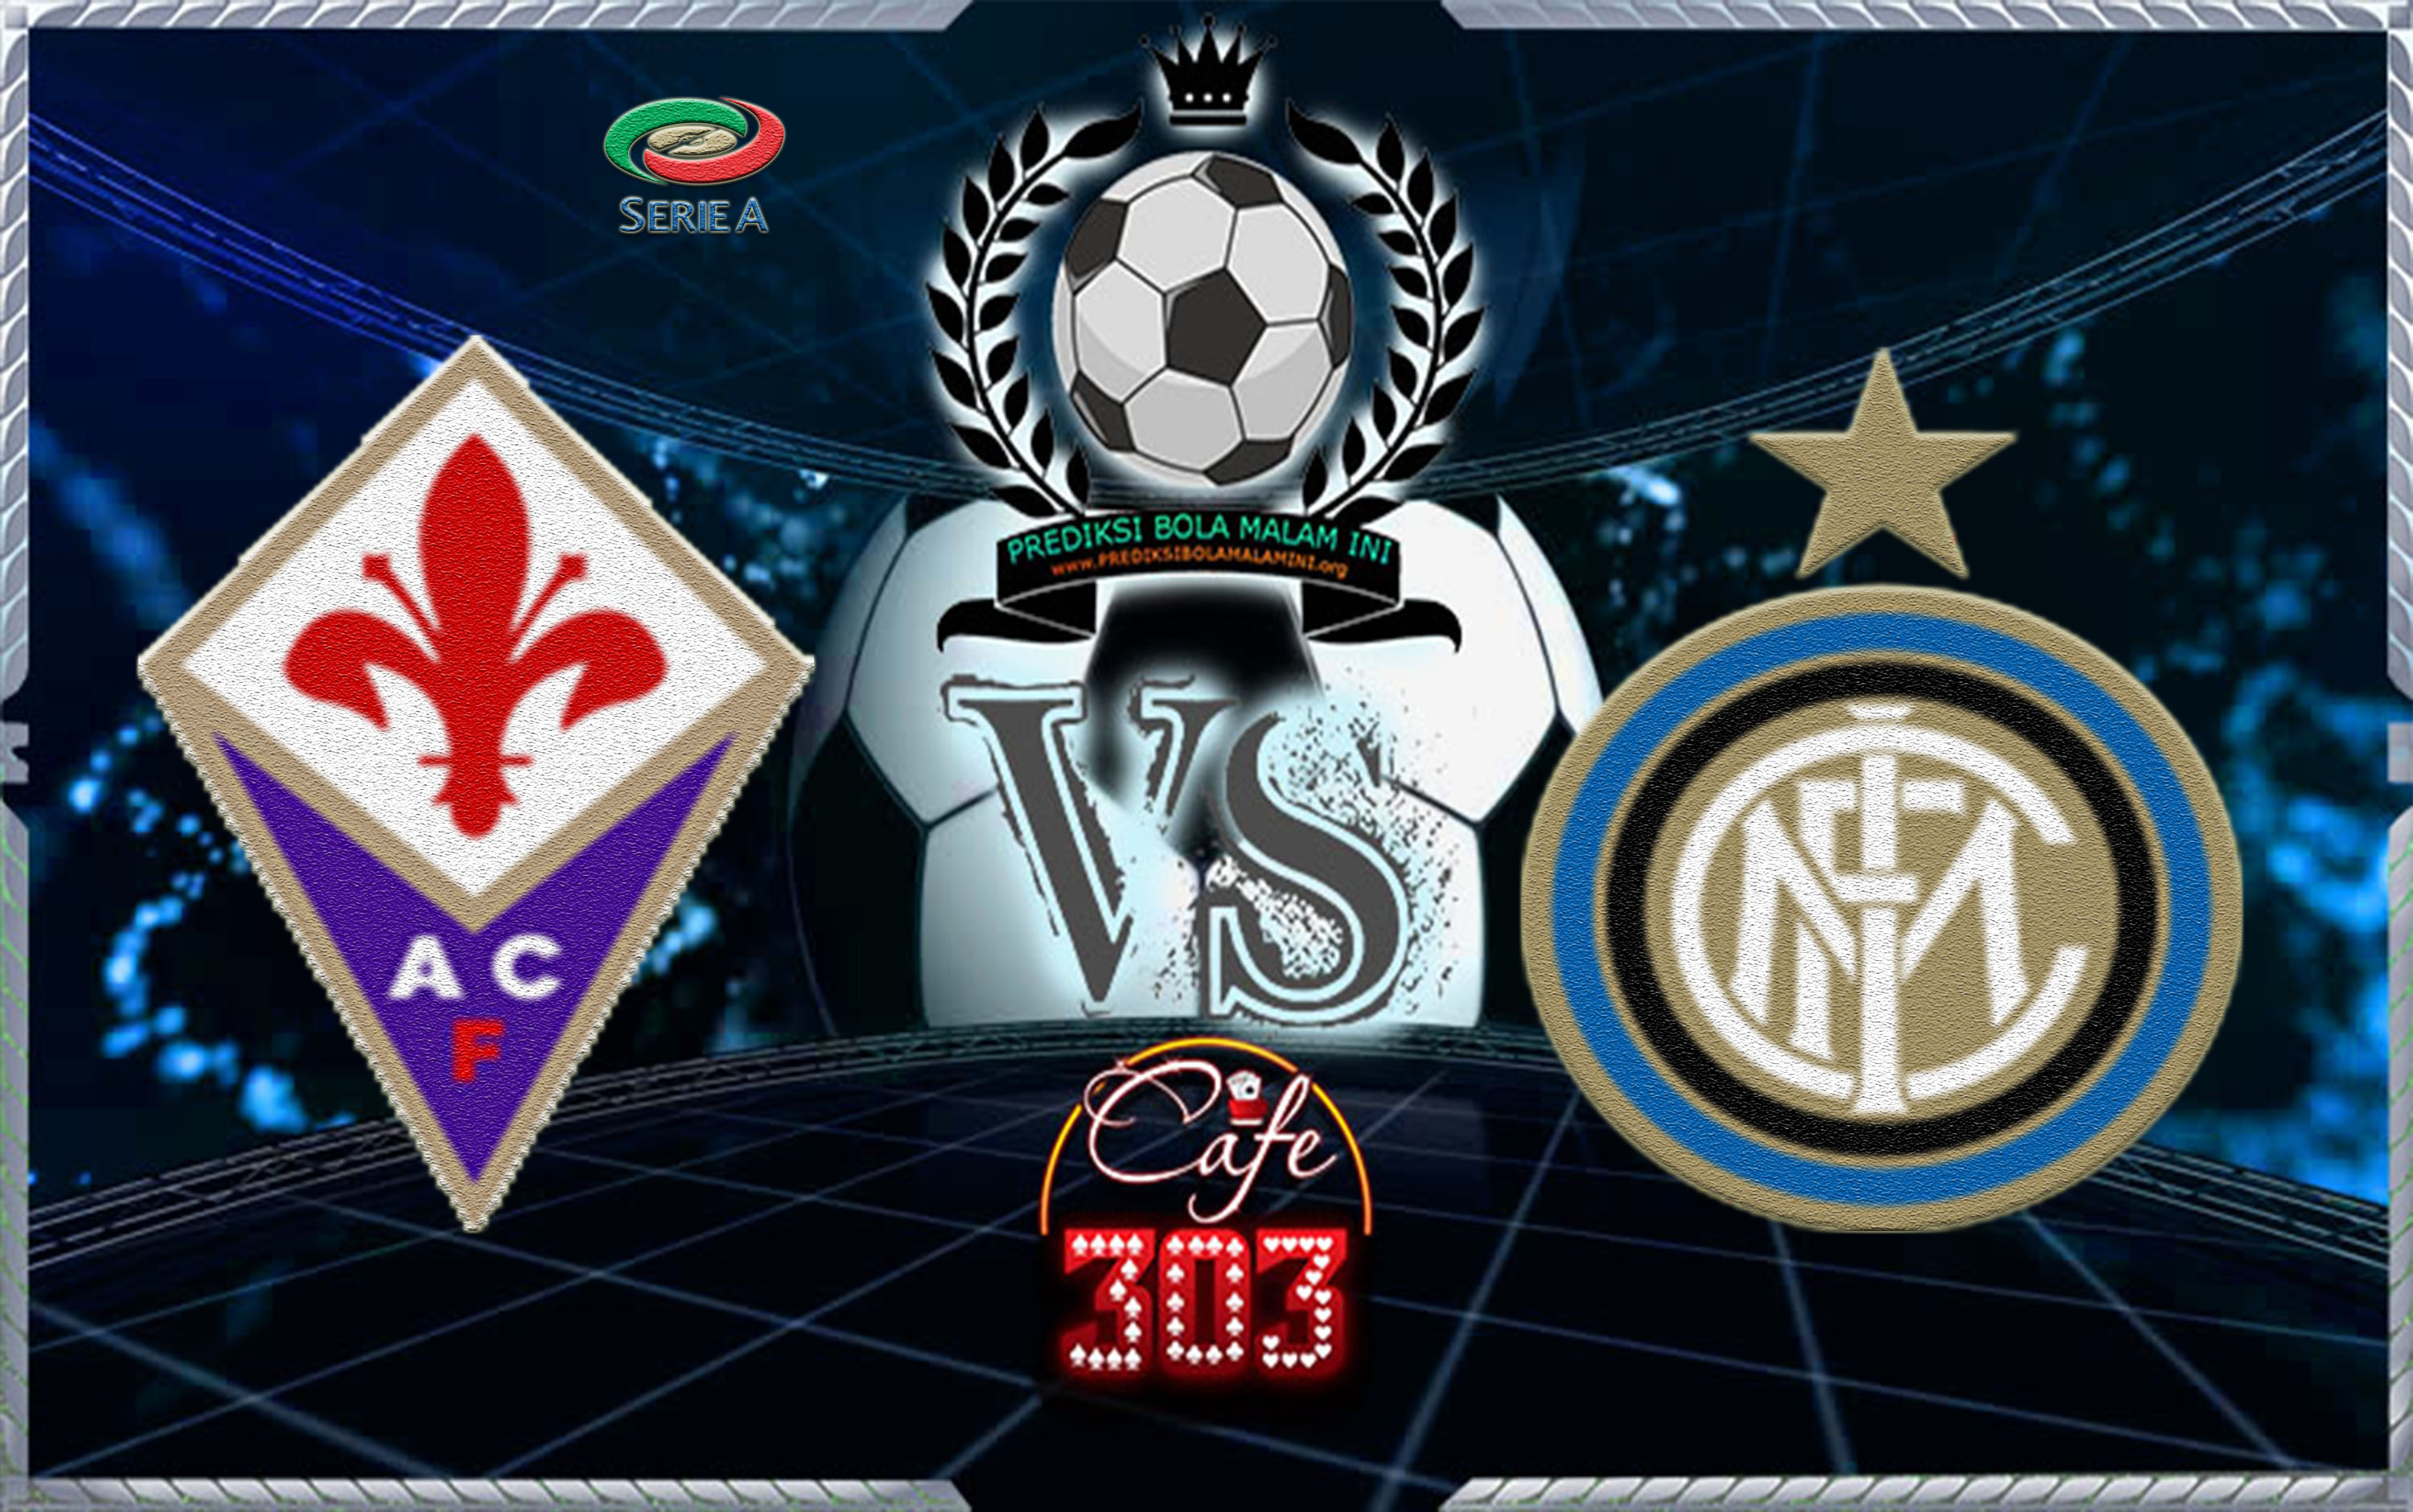 FIORENTINA VS INTER MILAN